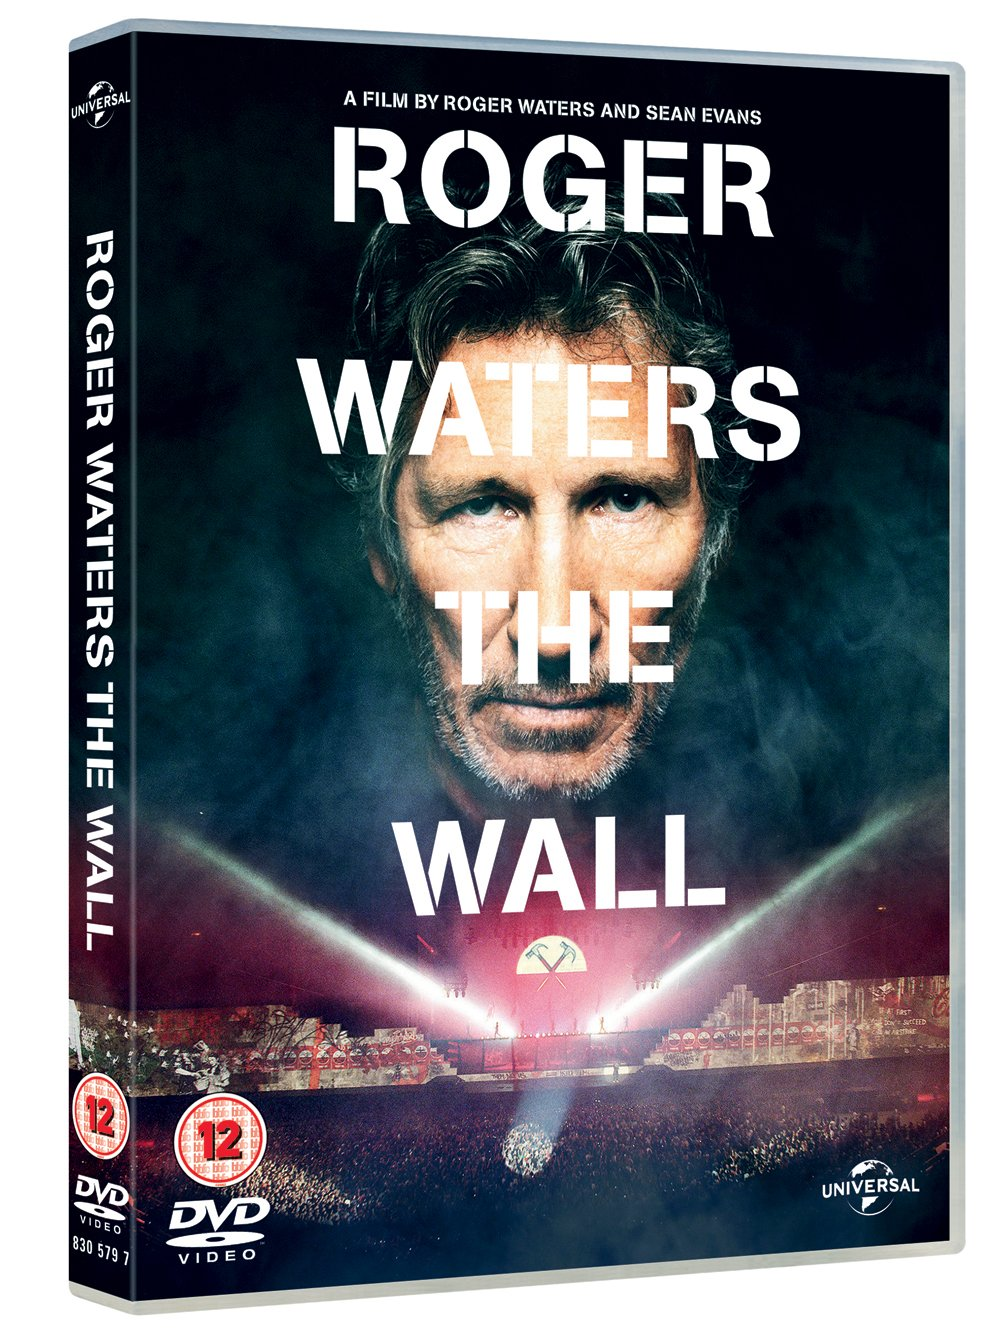 Roger Waters: The Wall [DVD] [2015]: Amazon.co.uk: Roger Waters ...